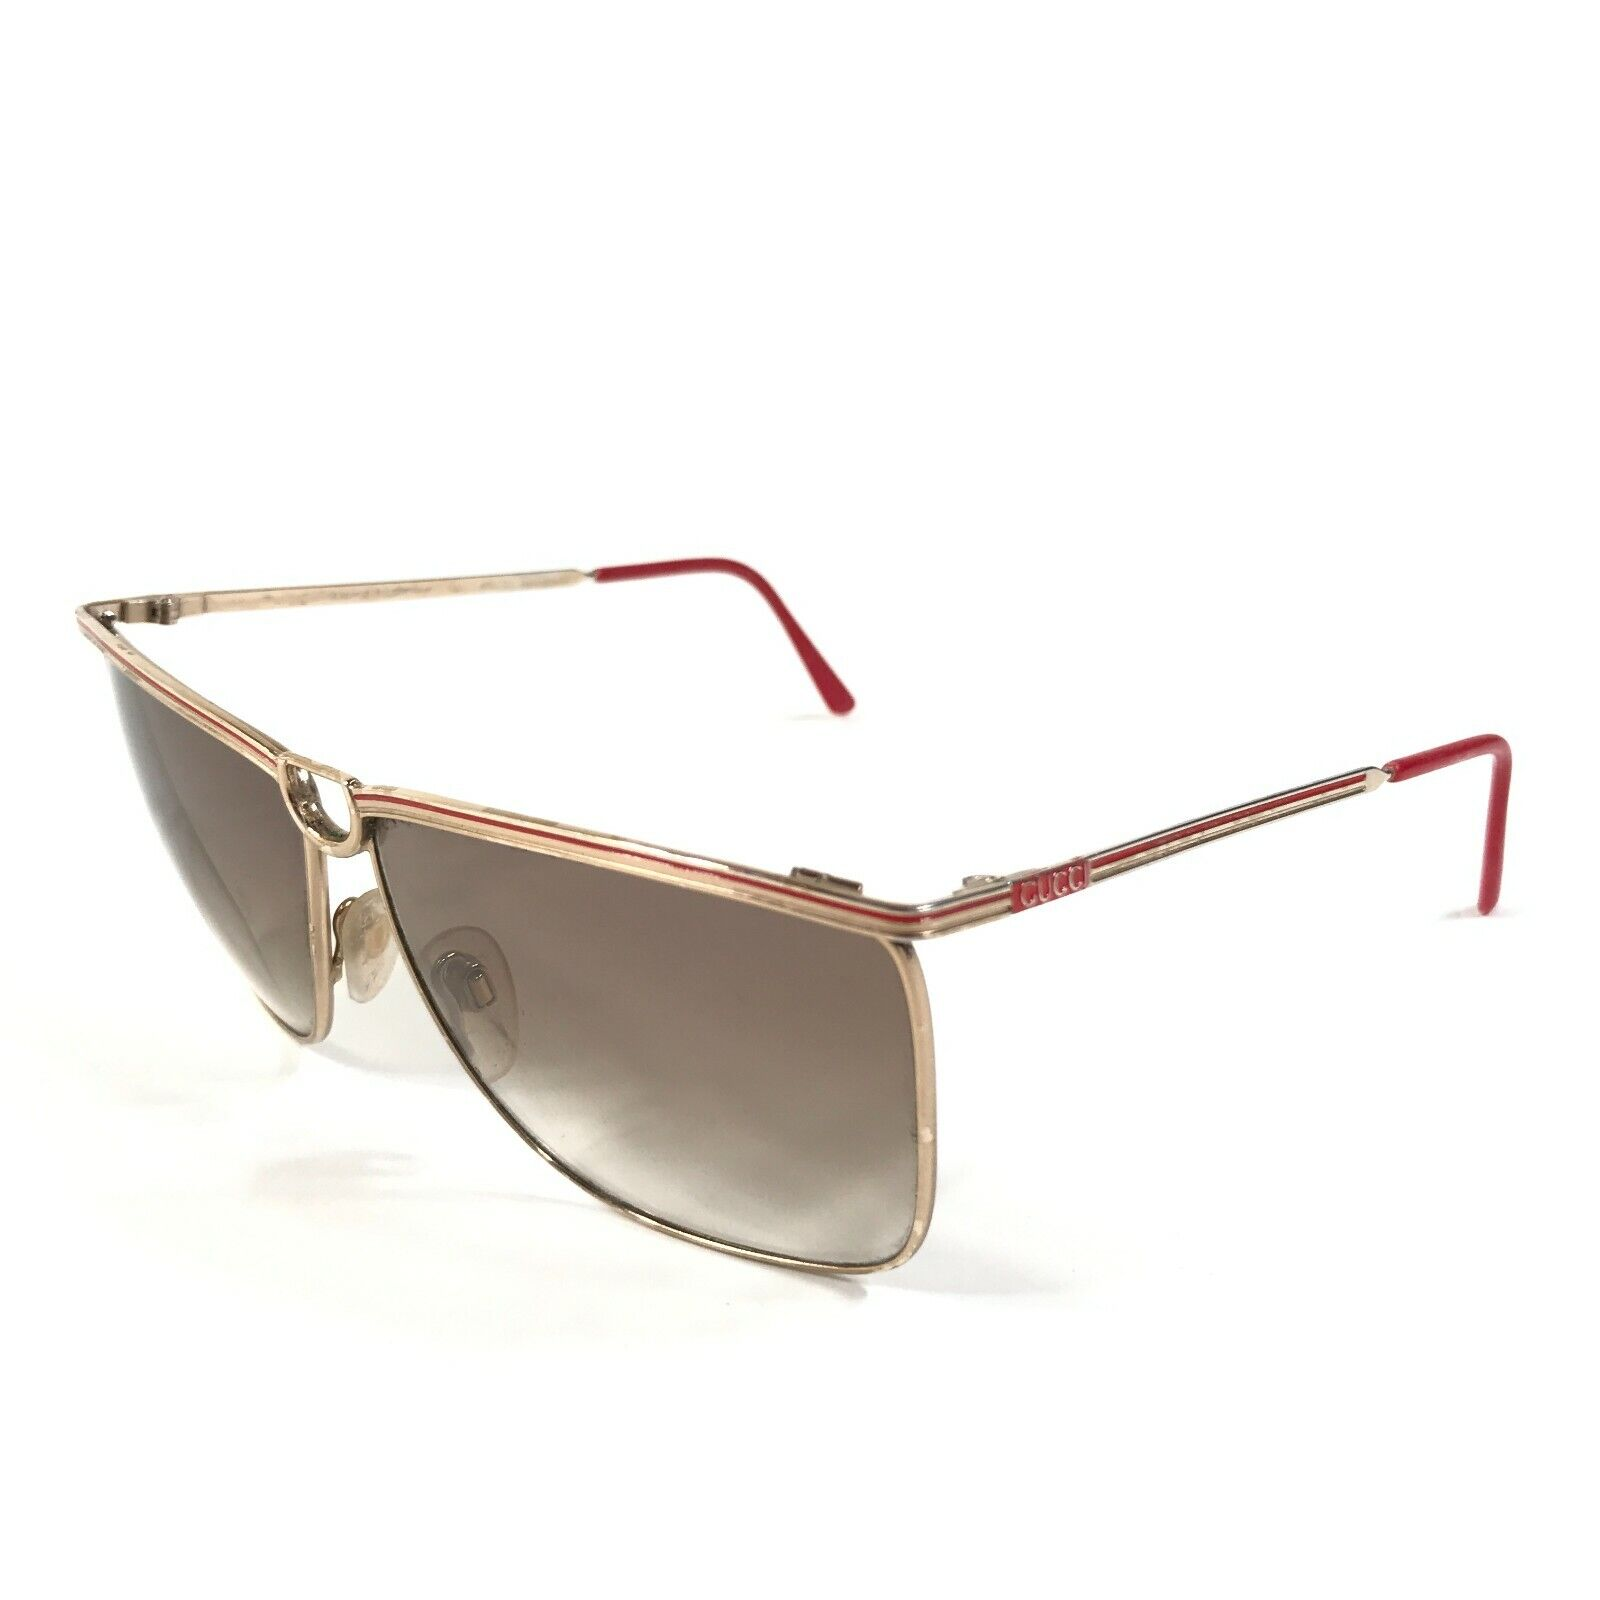 Vintage Gucci Sunglasses 70s 80s Gold Red Logos B… - image 5